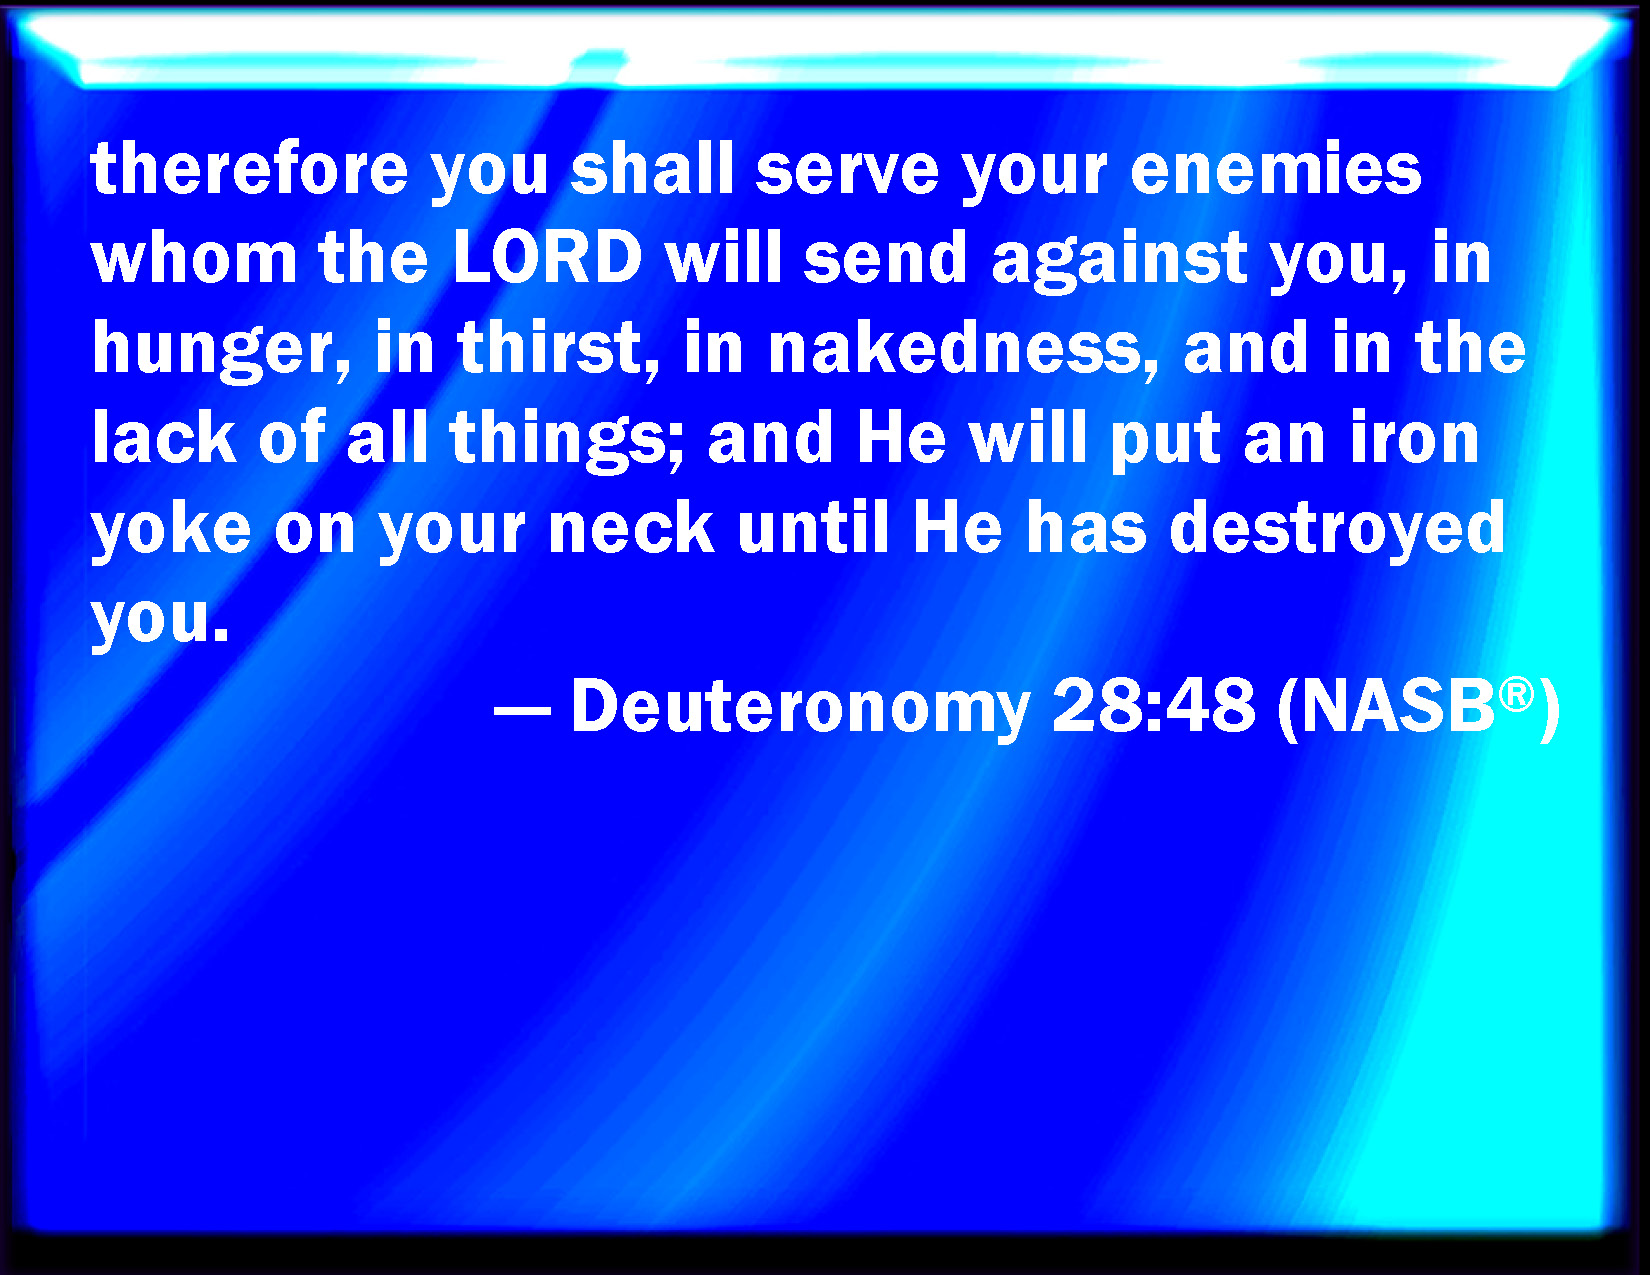 Deuteronomy 28:48 Therefore shall you serve your enemies